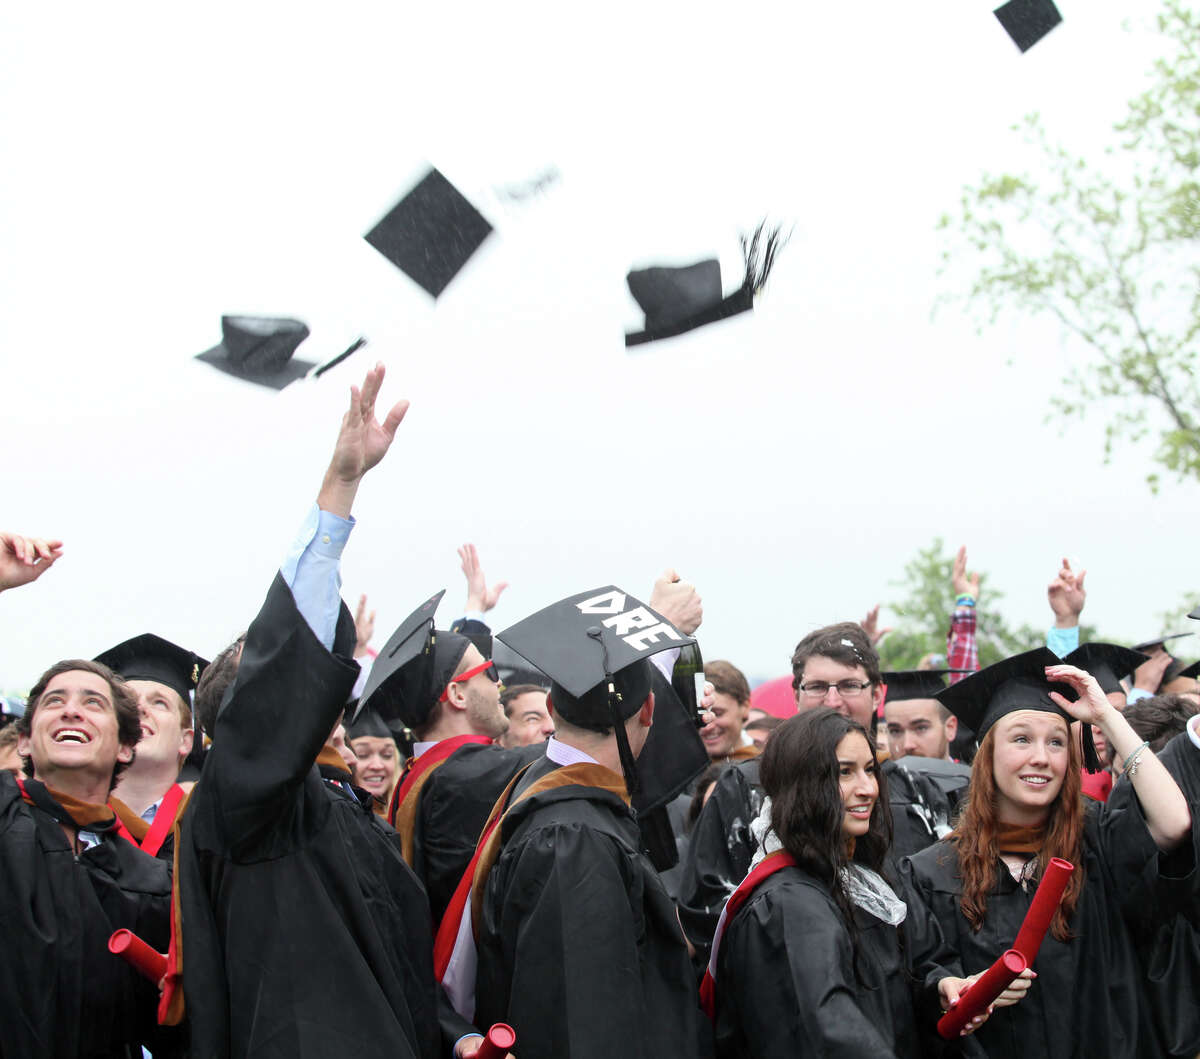 In 2011 (the most recent year for which figures are available) the top 10 compensation packages for private college presidents ranged from $3.36 million to $1.65 million. - educationdive.comSee which presidents made the most money.